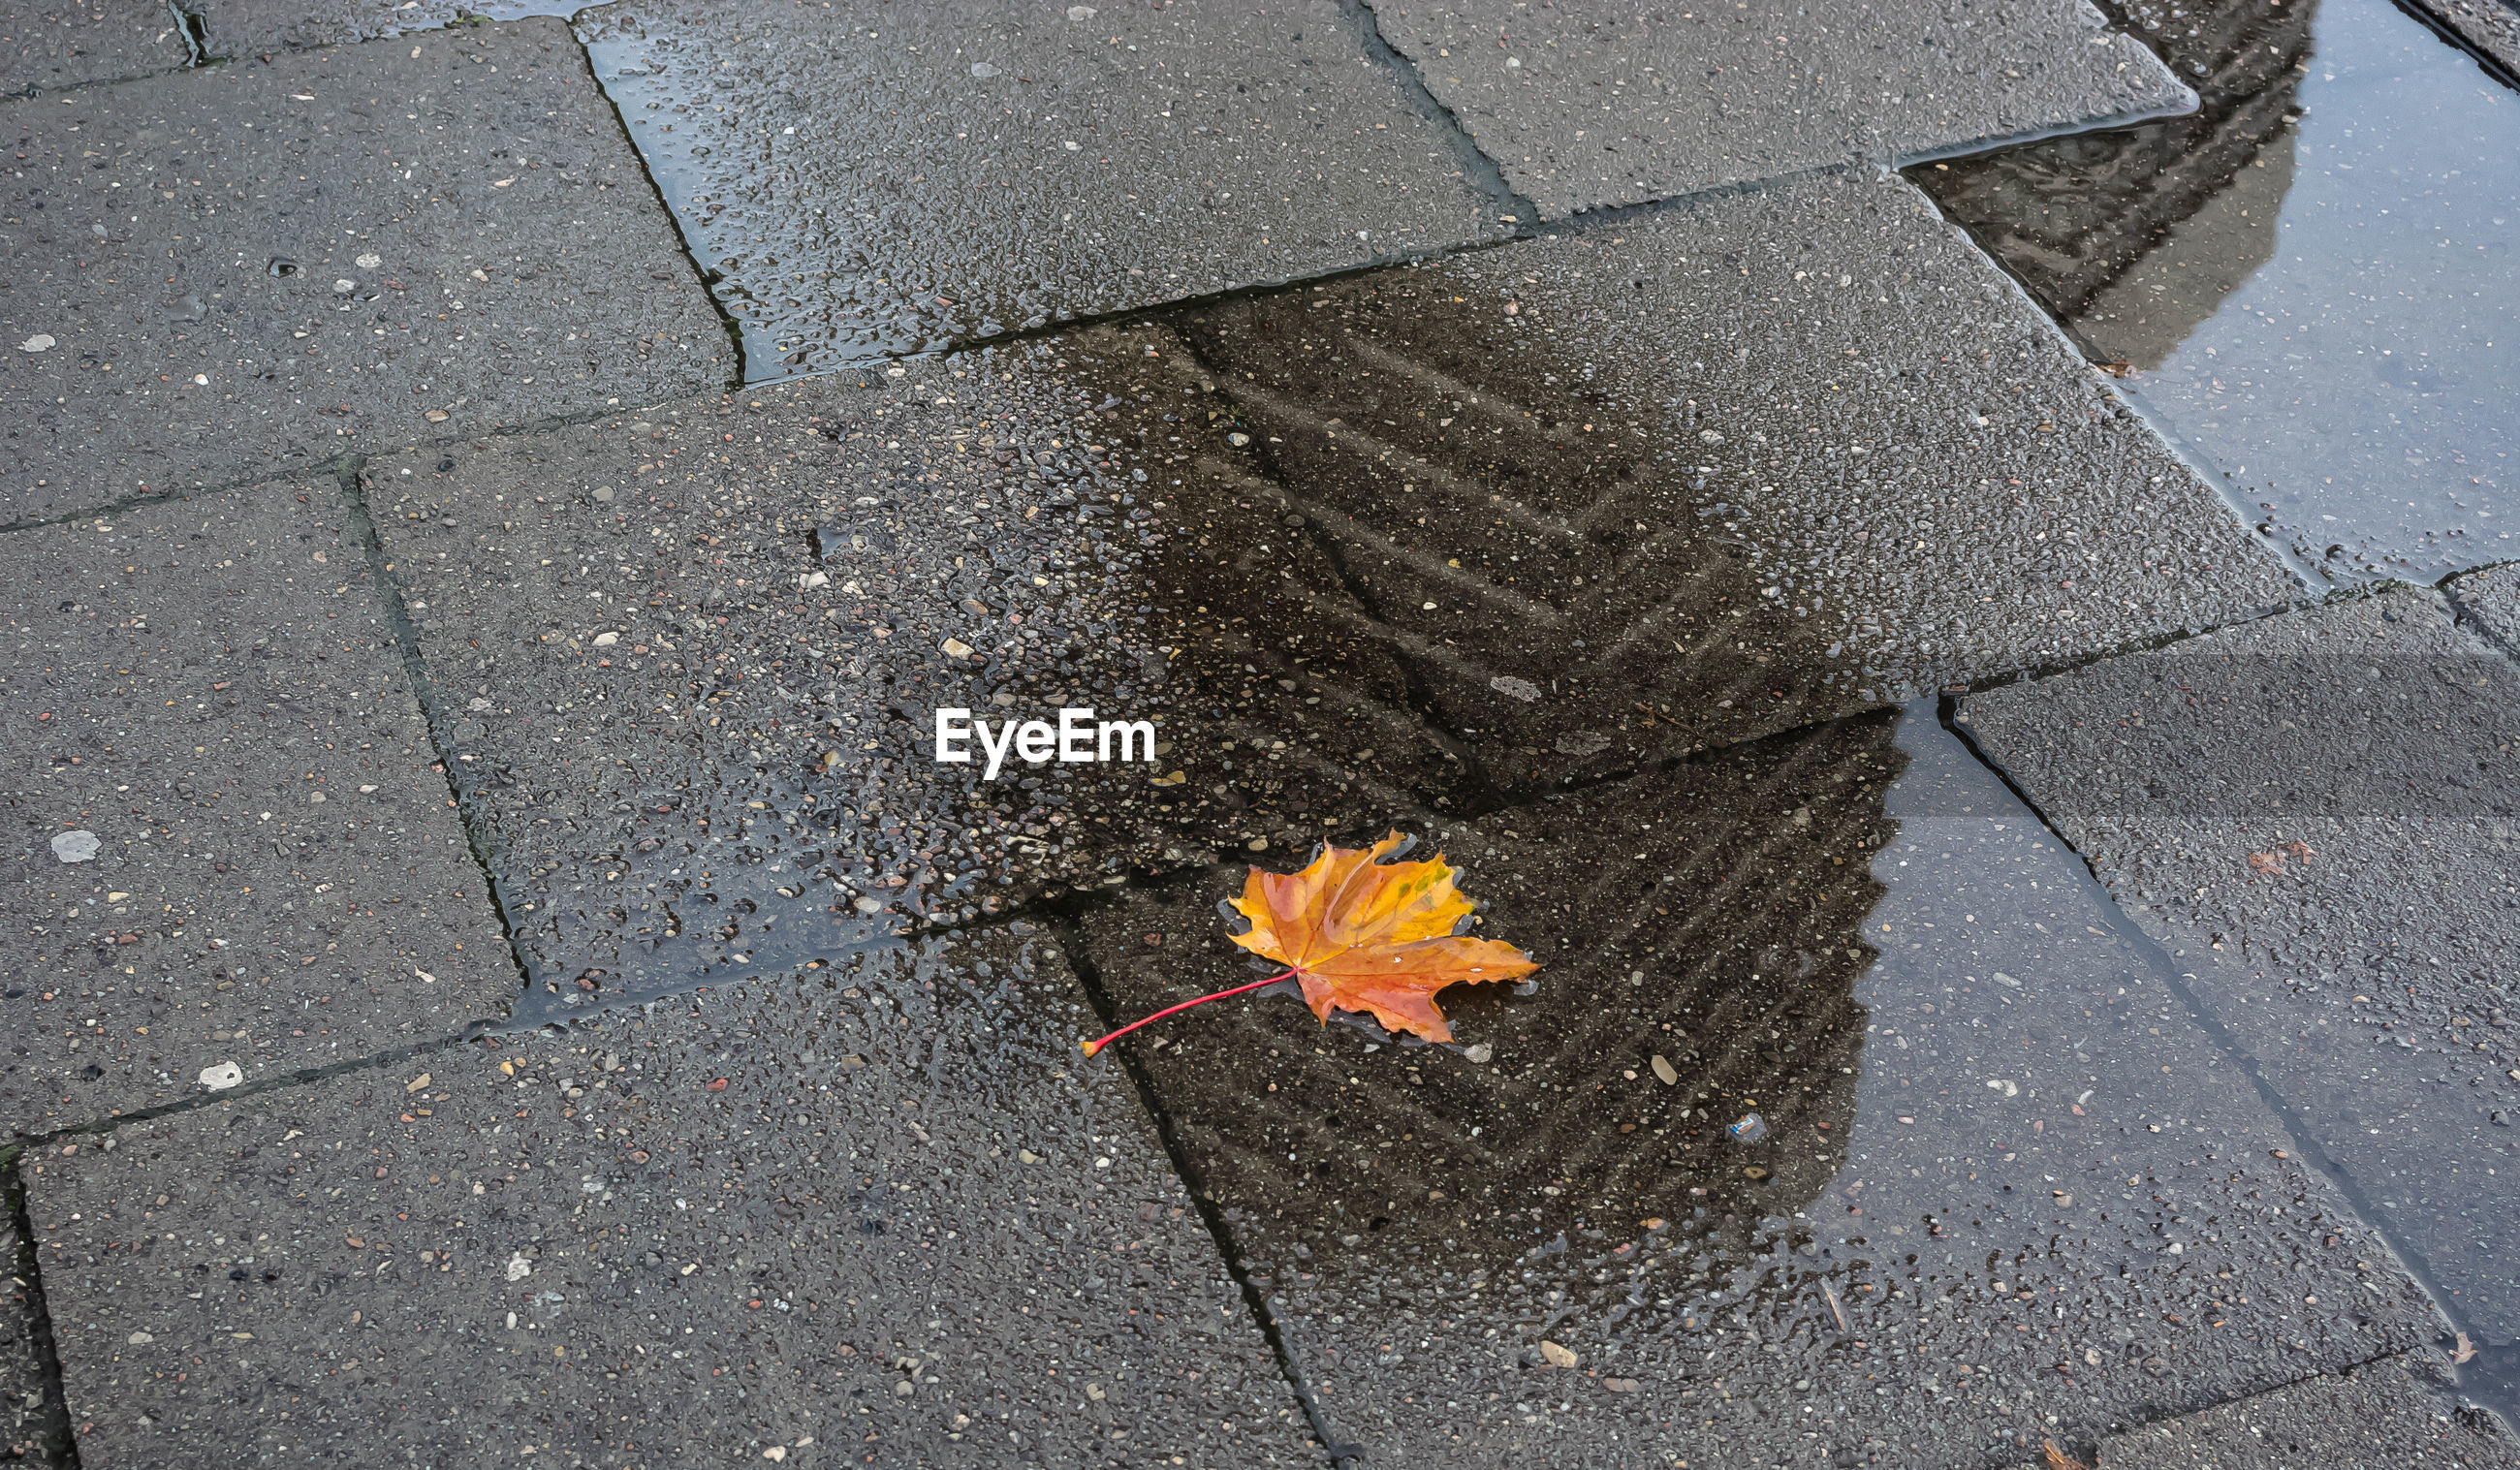 HIGH ANGLE VIEW OF YELLOW MAPLE LEAF ON STREET